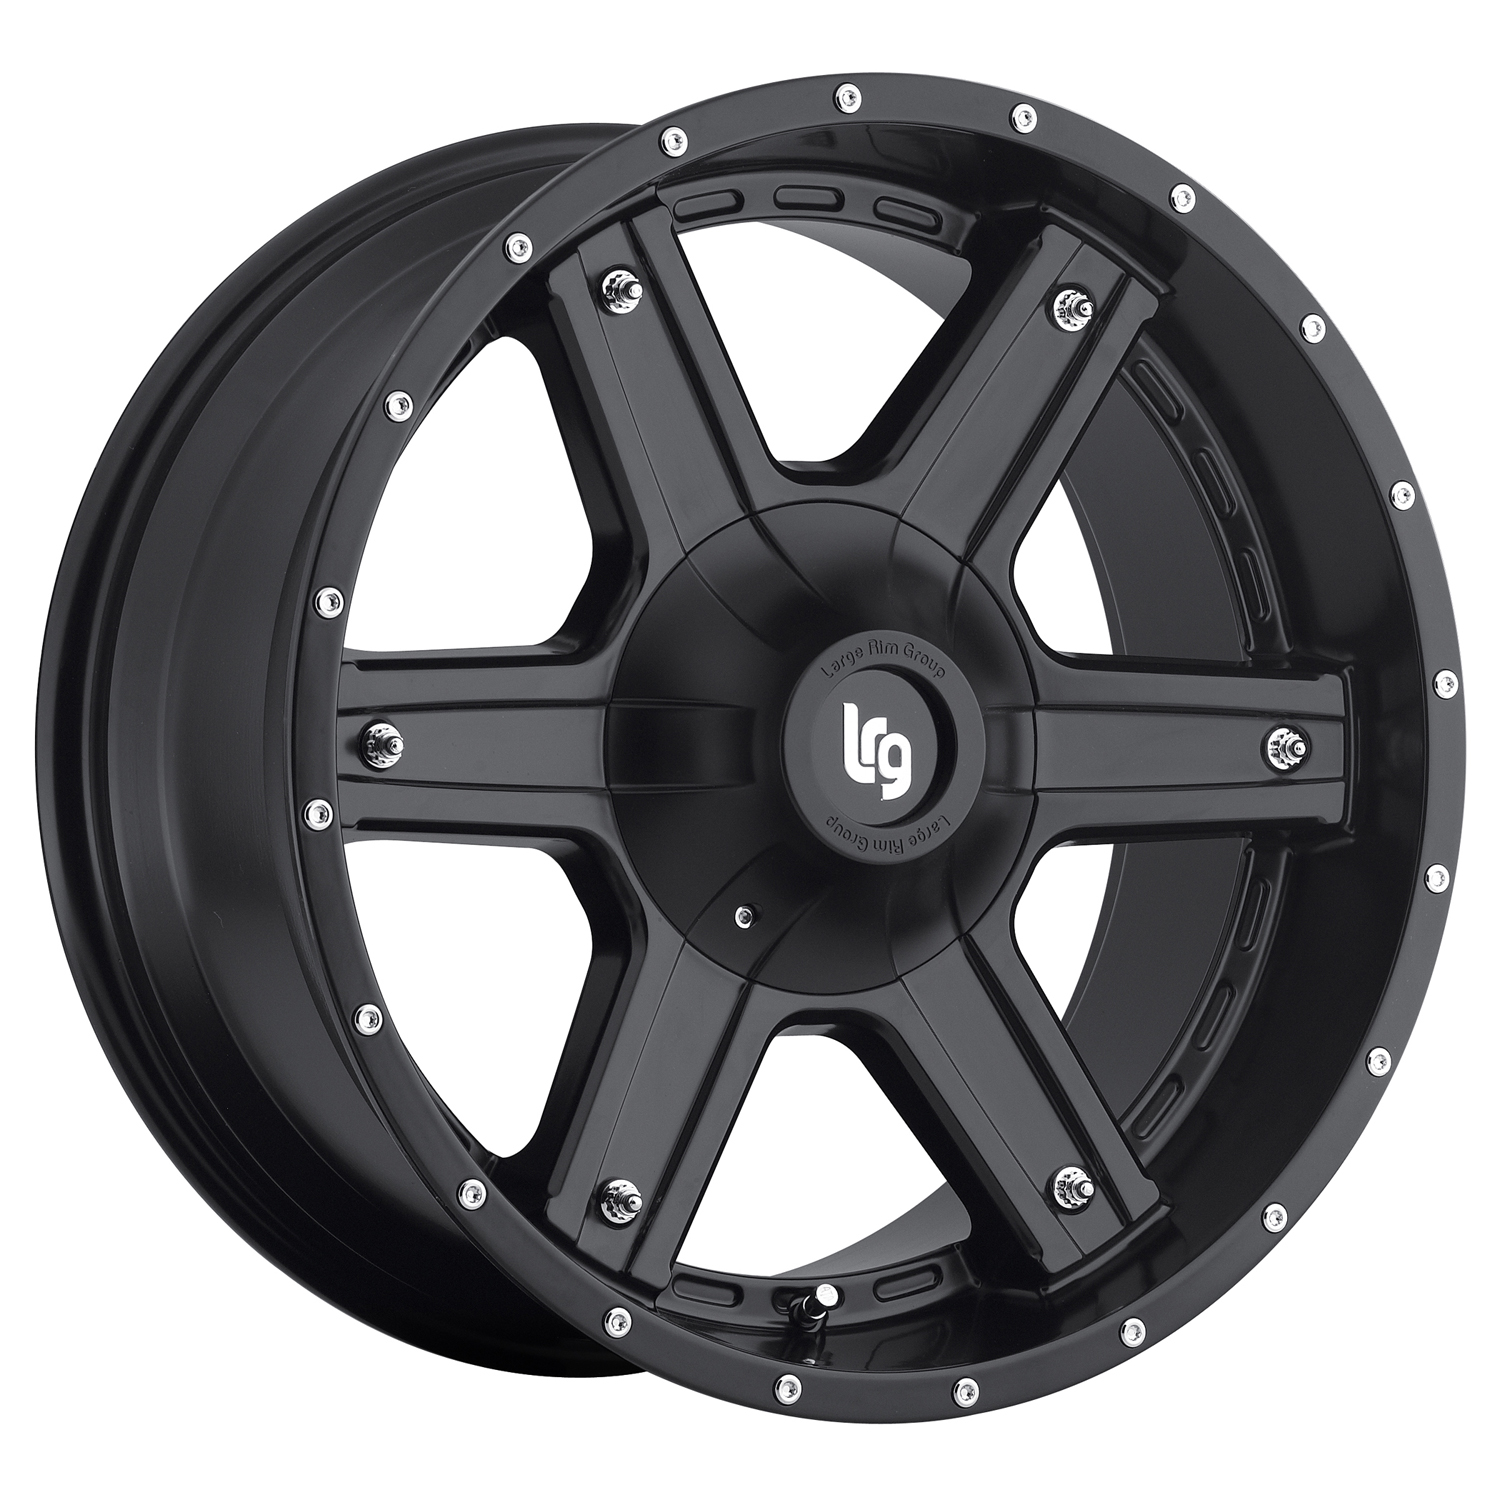 LRG Rims Series 101 Matte Black Wheels